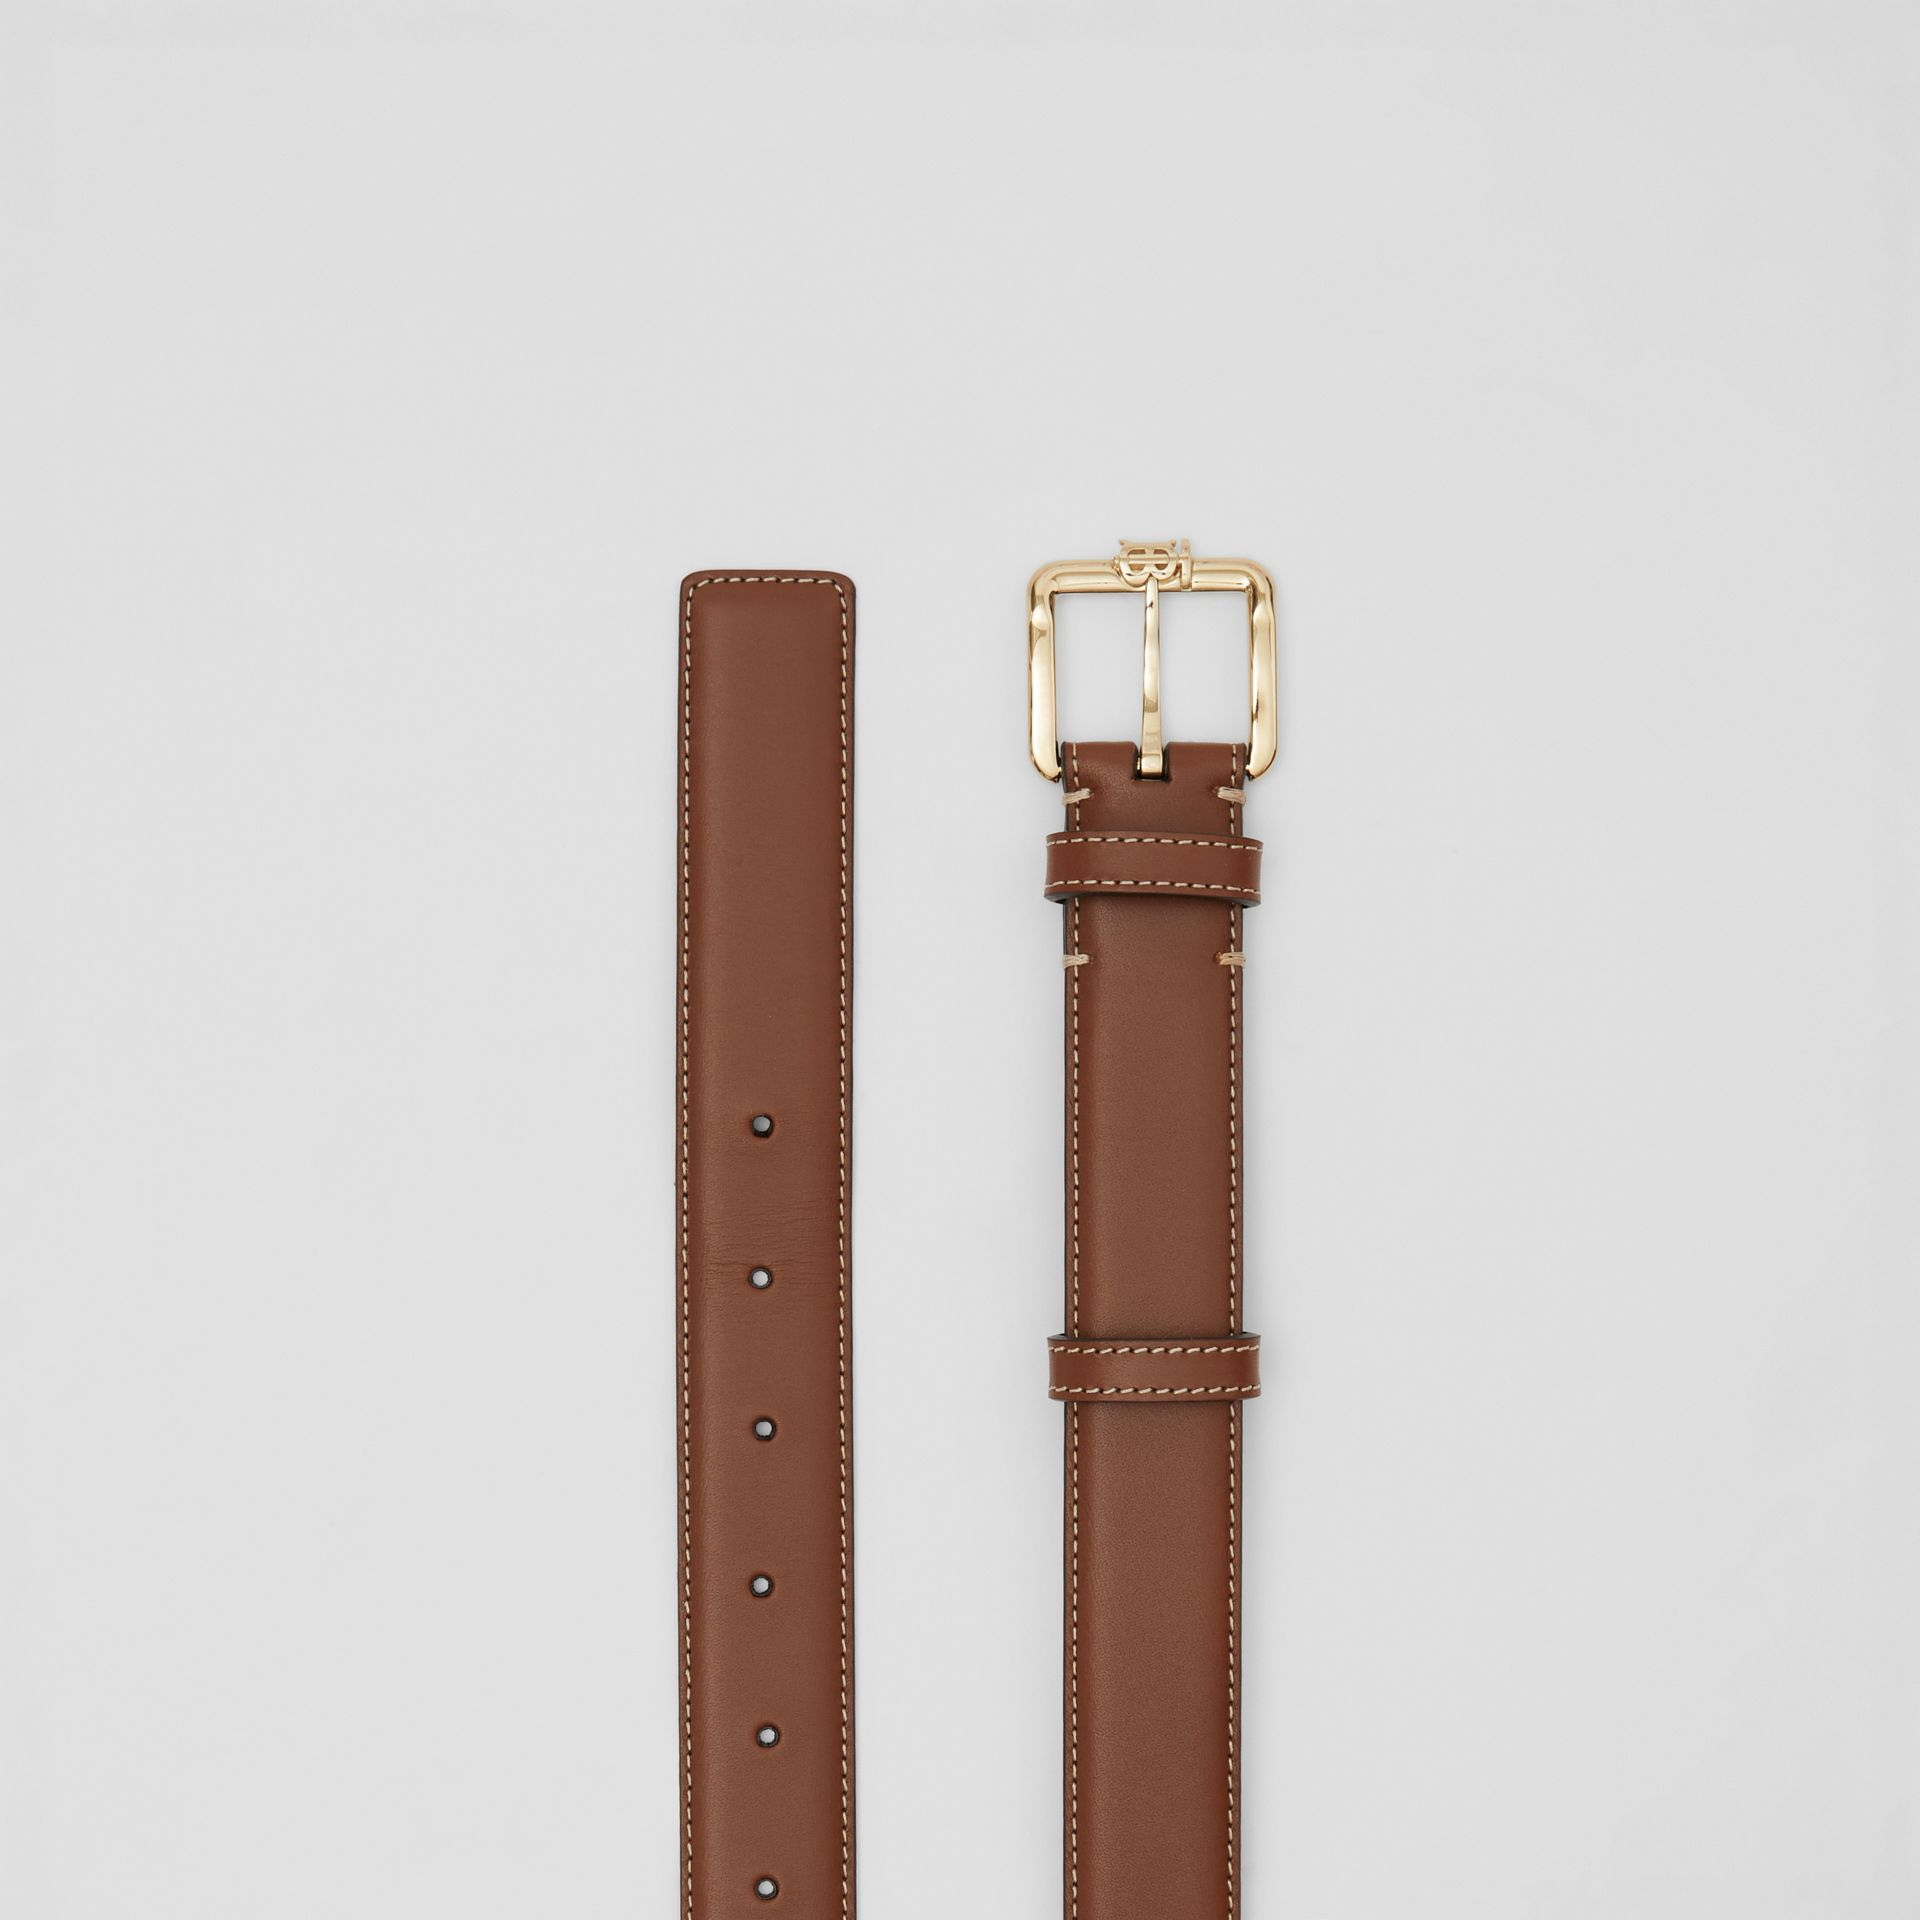 Monogram Motif Topstitched Leather Belt in Tan/light Gold - Women | Burberry - gallery image 5